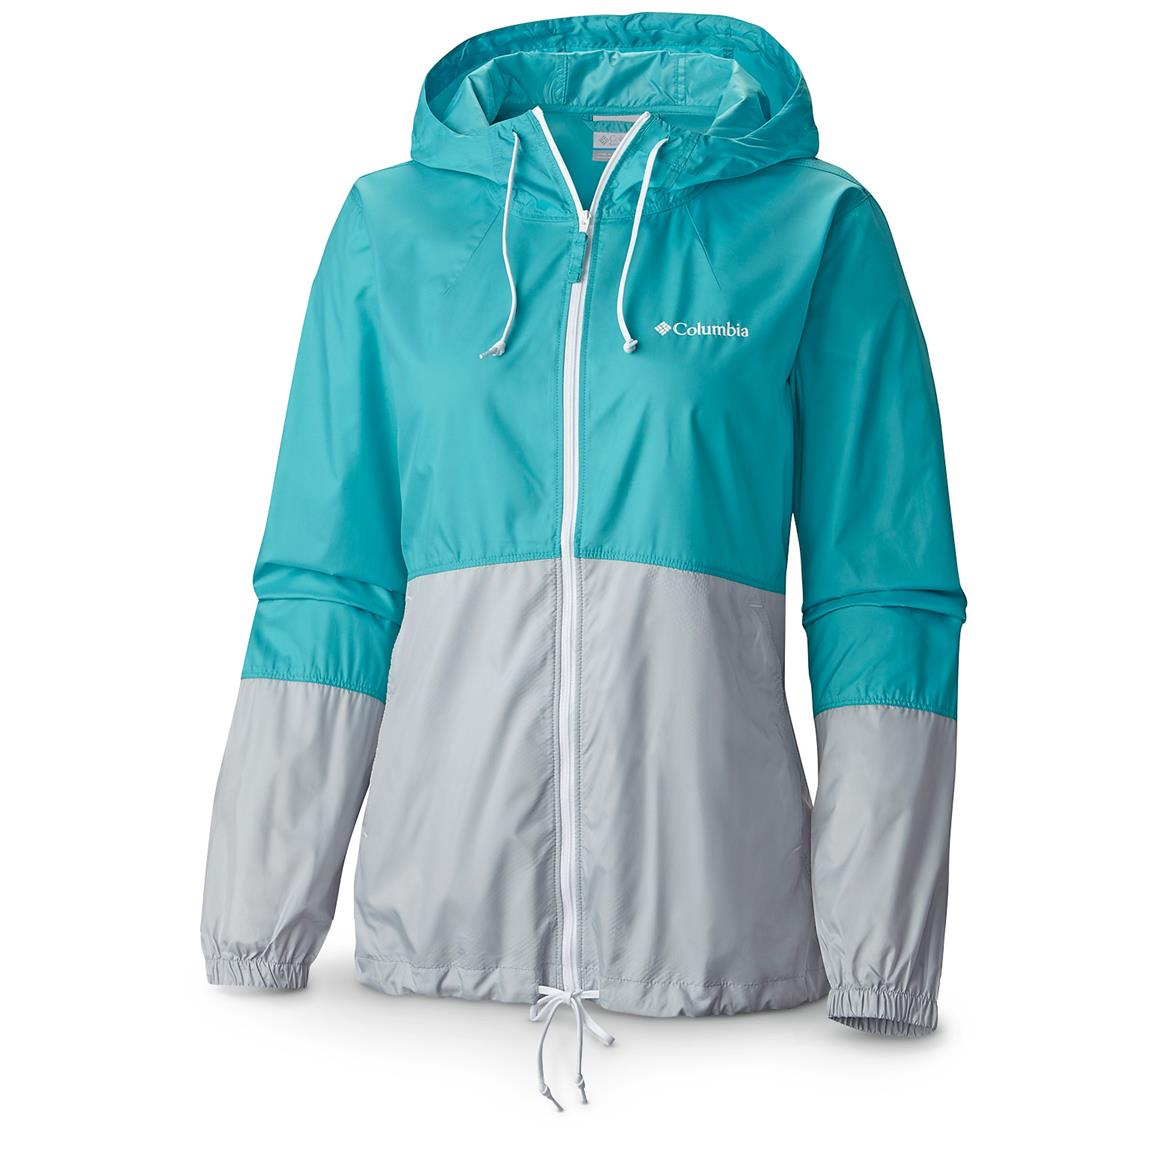 Columbia Women's Flash Forward Windbreaker Jacket, Miami / Cirius